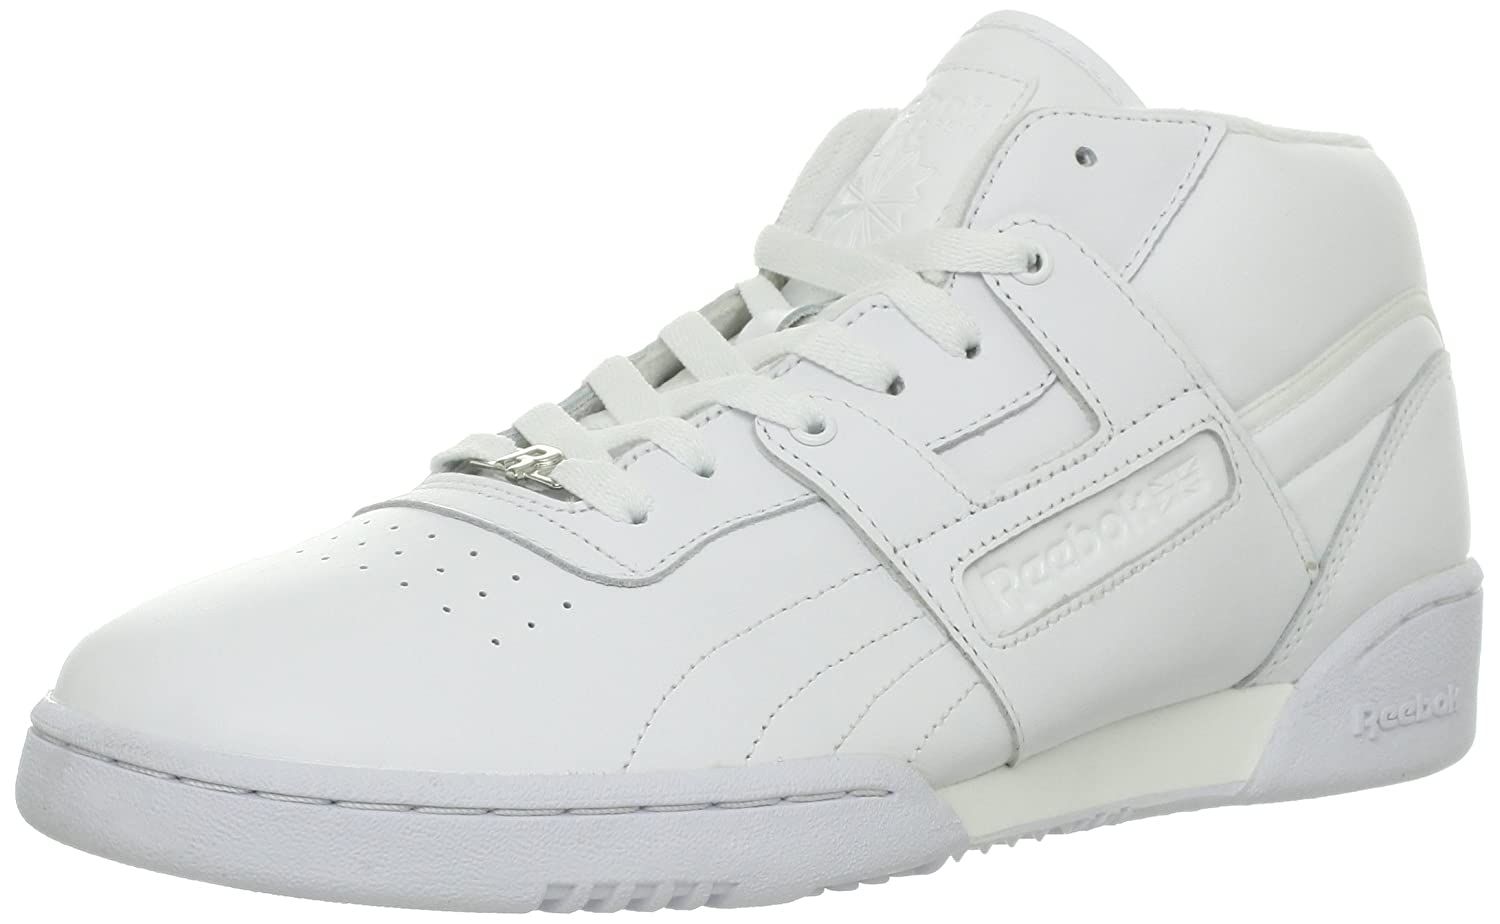 reebok soldiers Online Shopping for